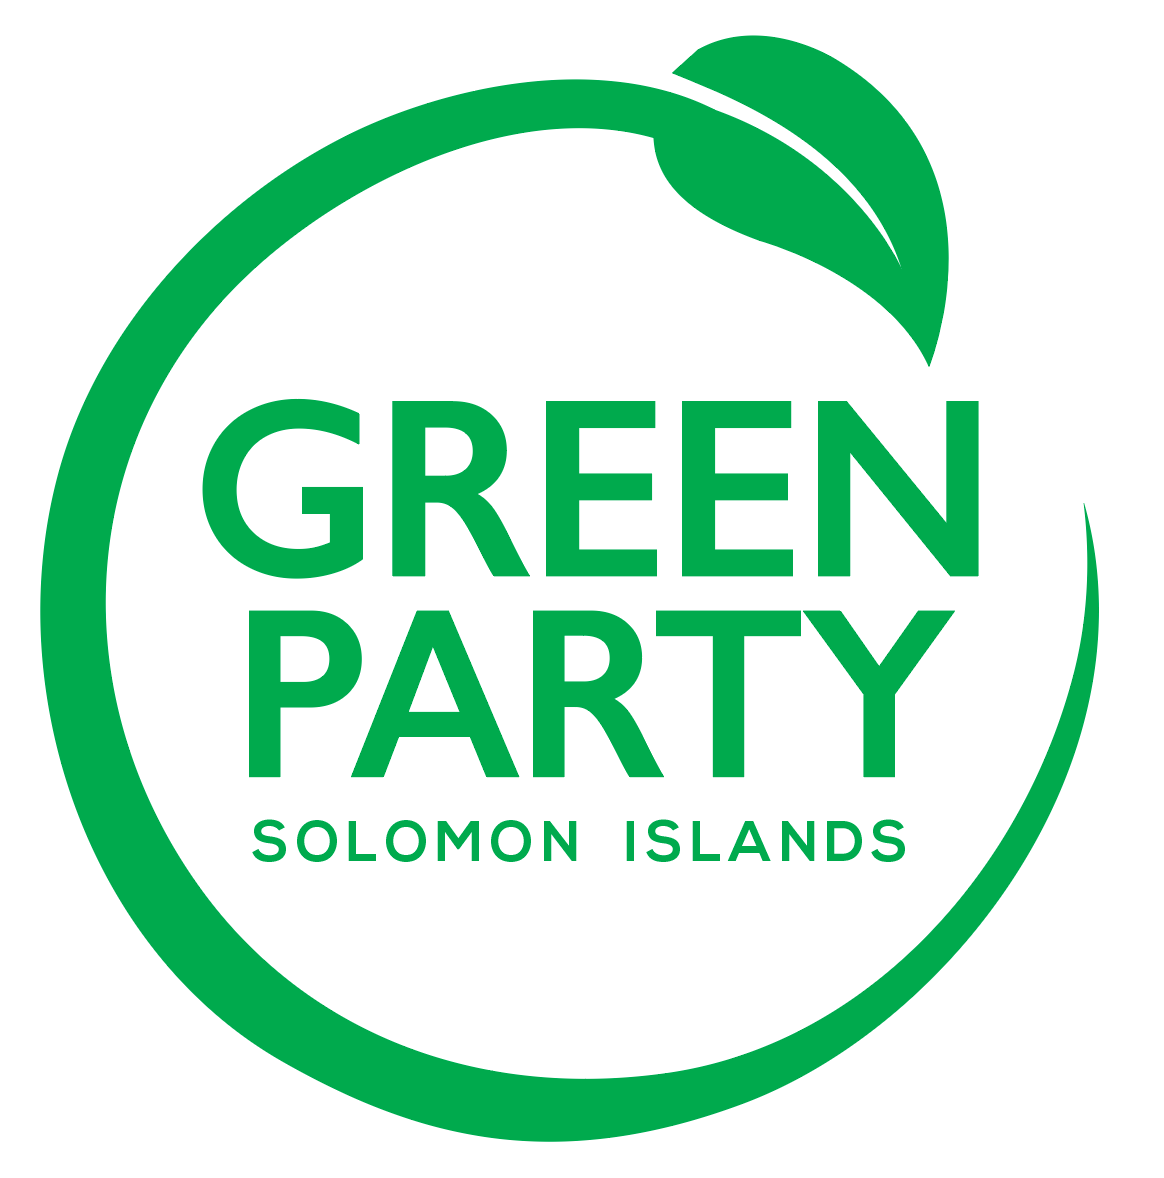 Green Party Solomon Islands